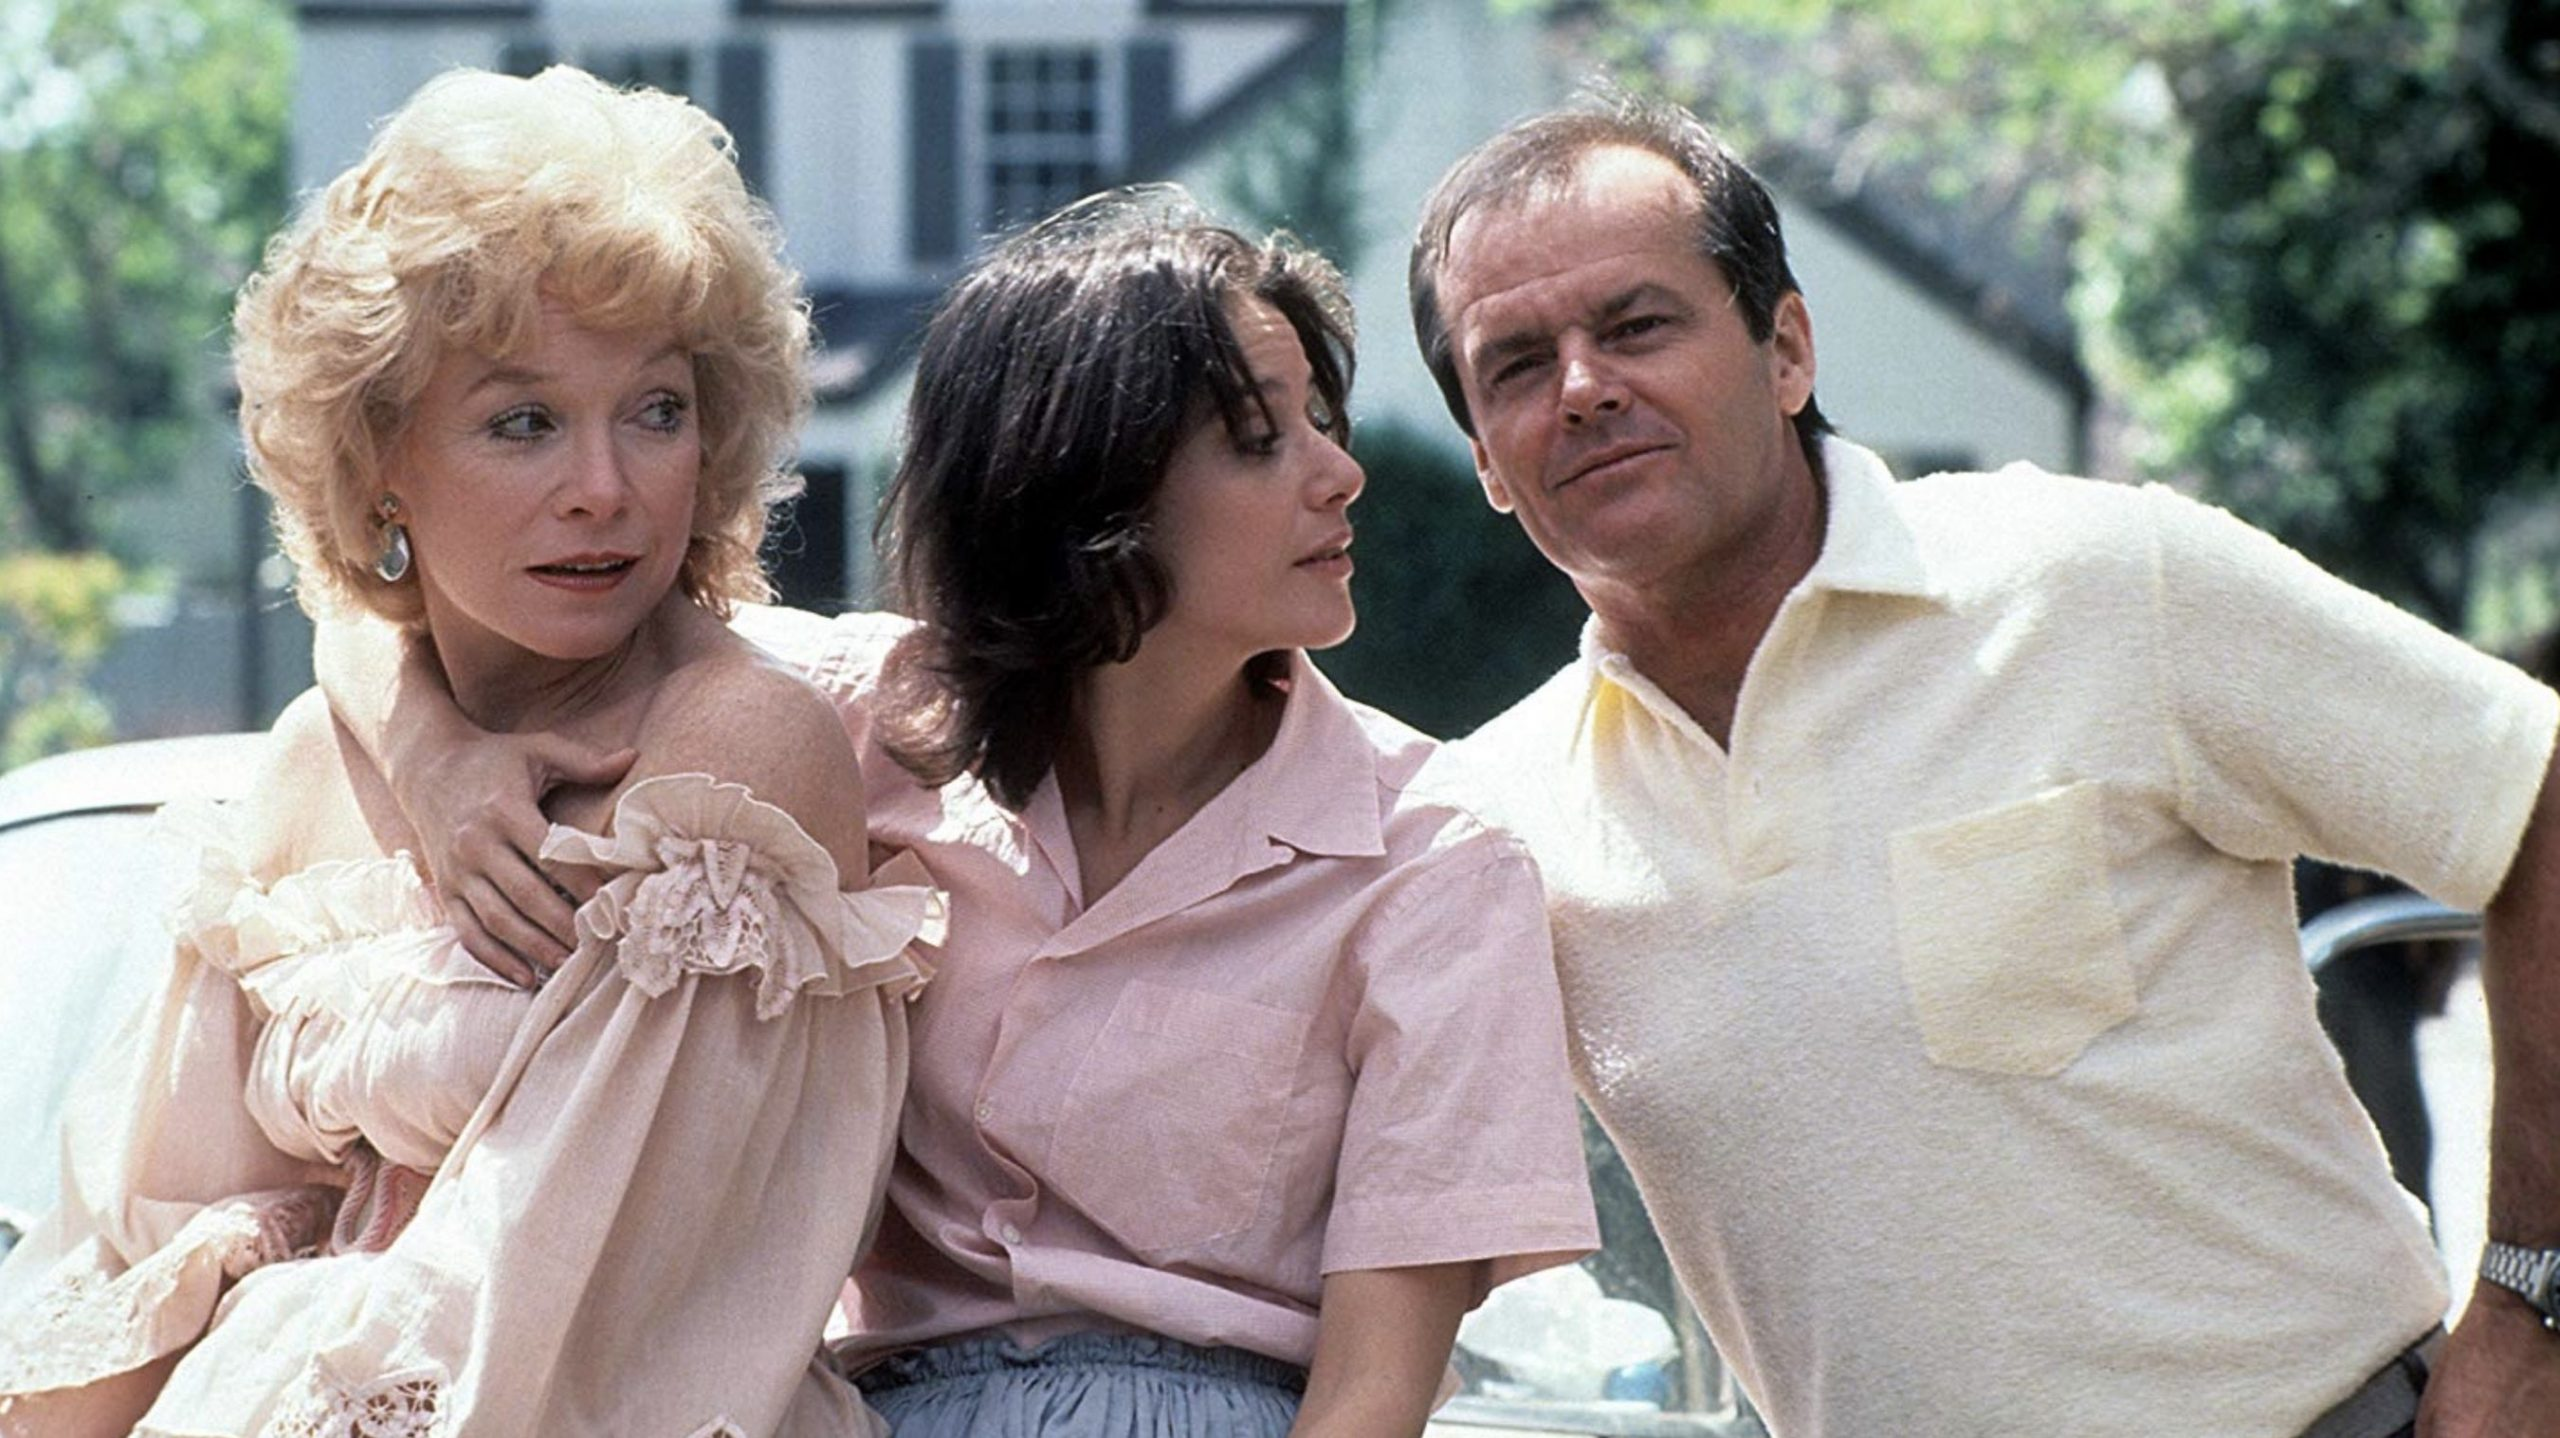 5b scaled 30 Fascinating Facts About The Classic 1989 Weepy Steel Magnolias